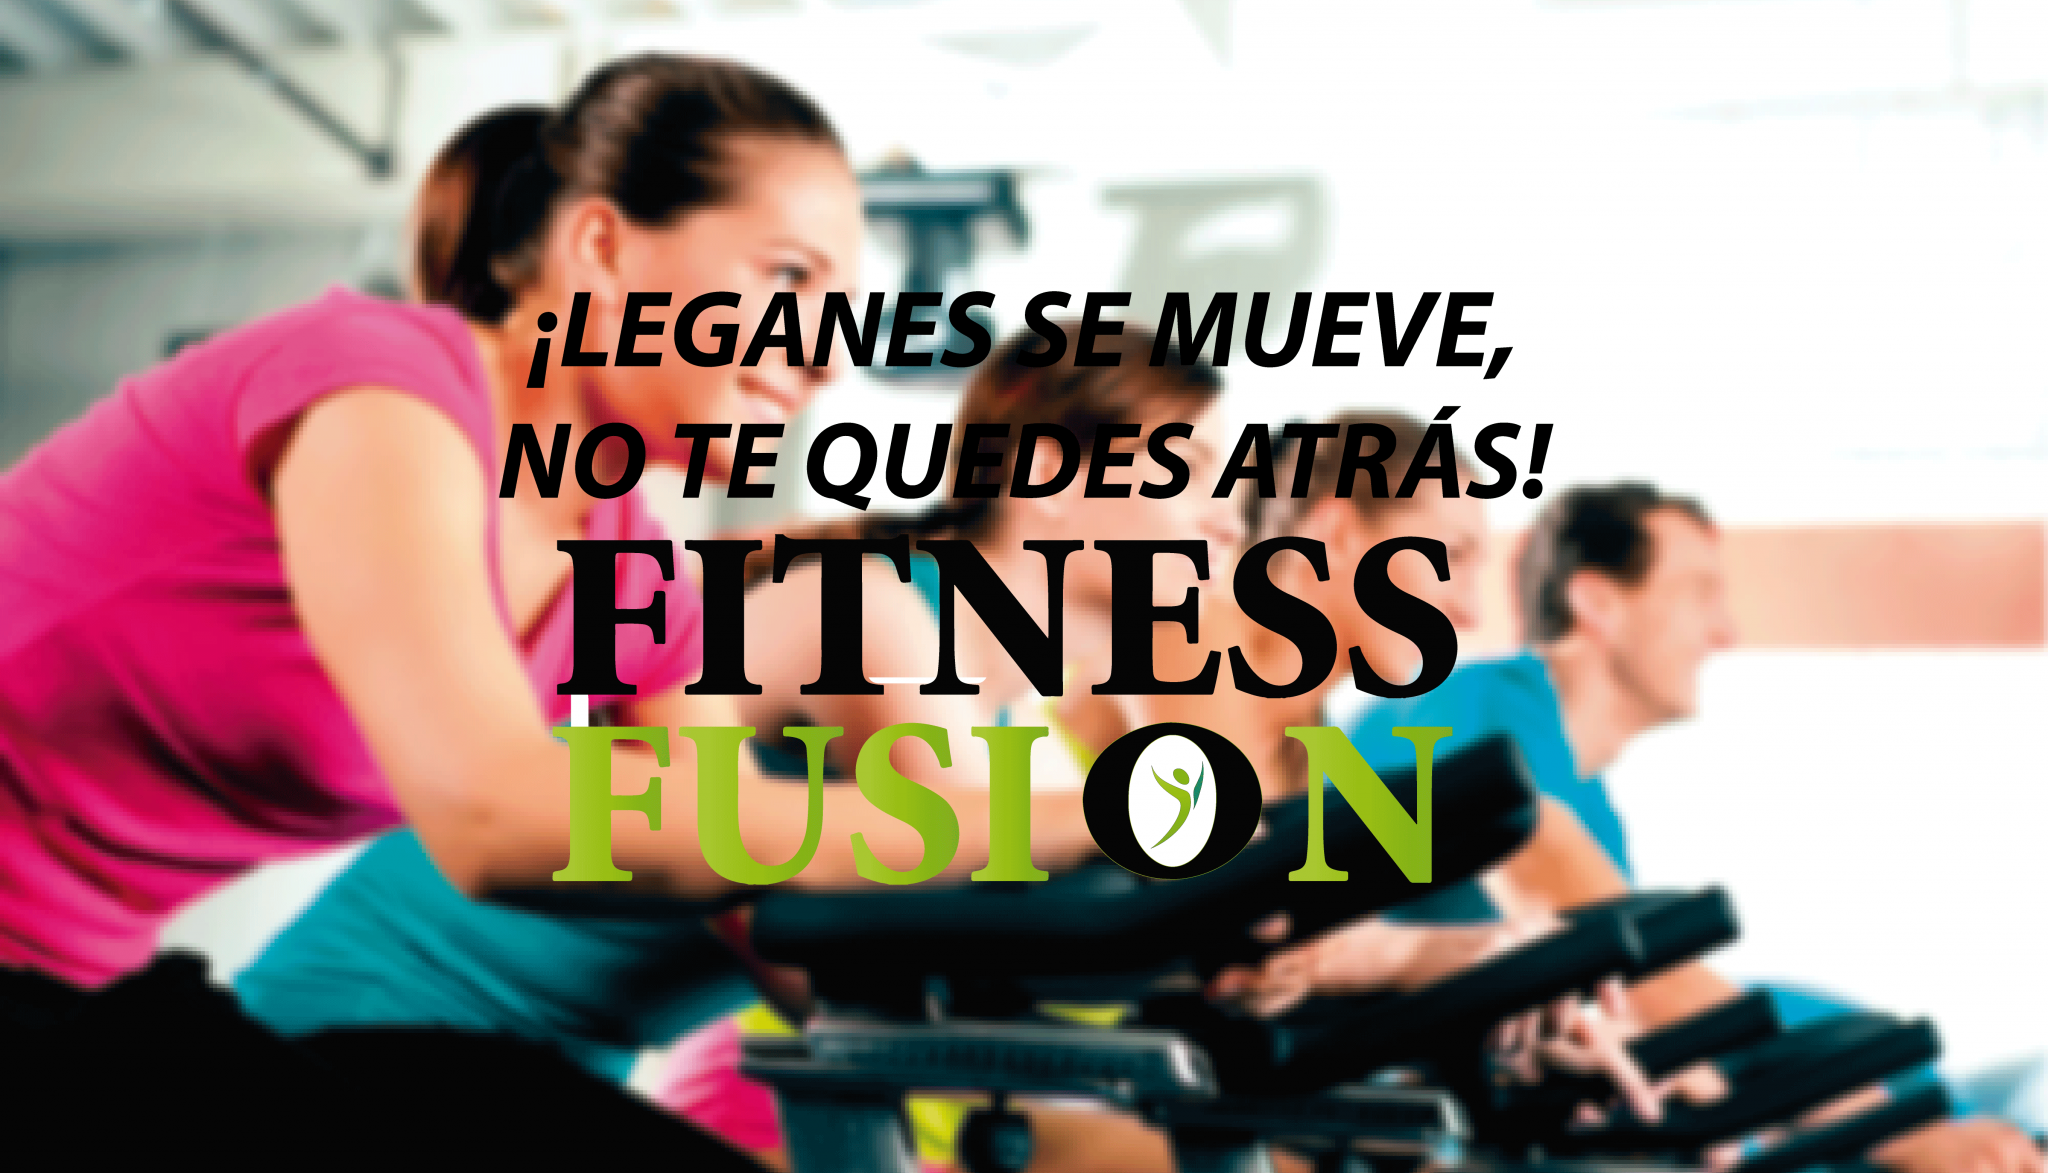 FITNESS FUSION HOME